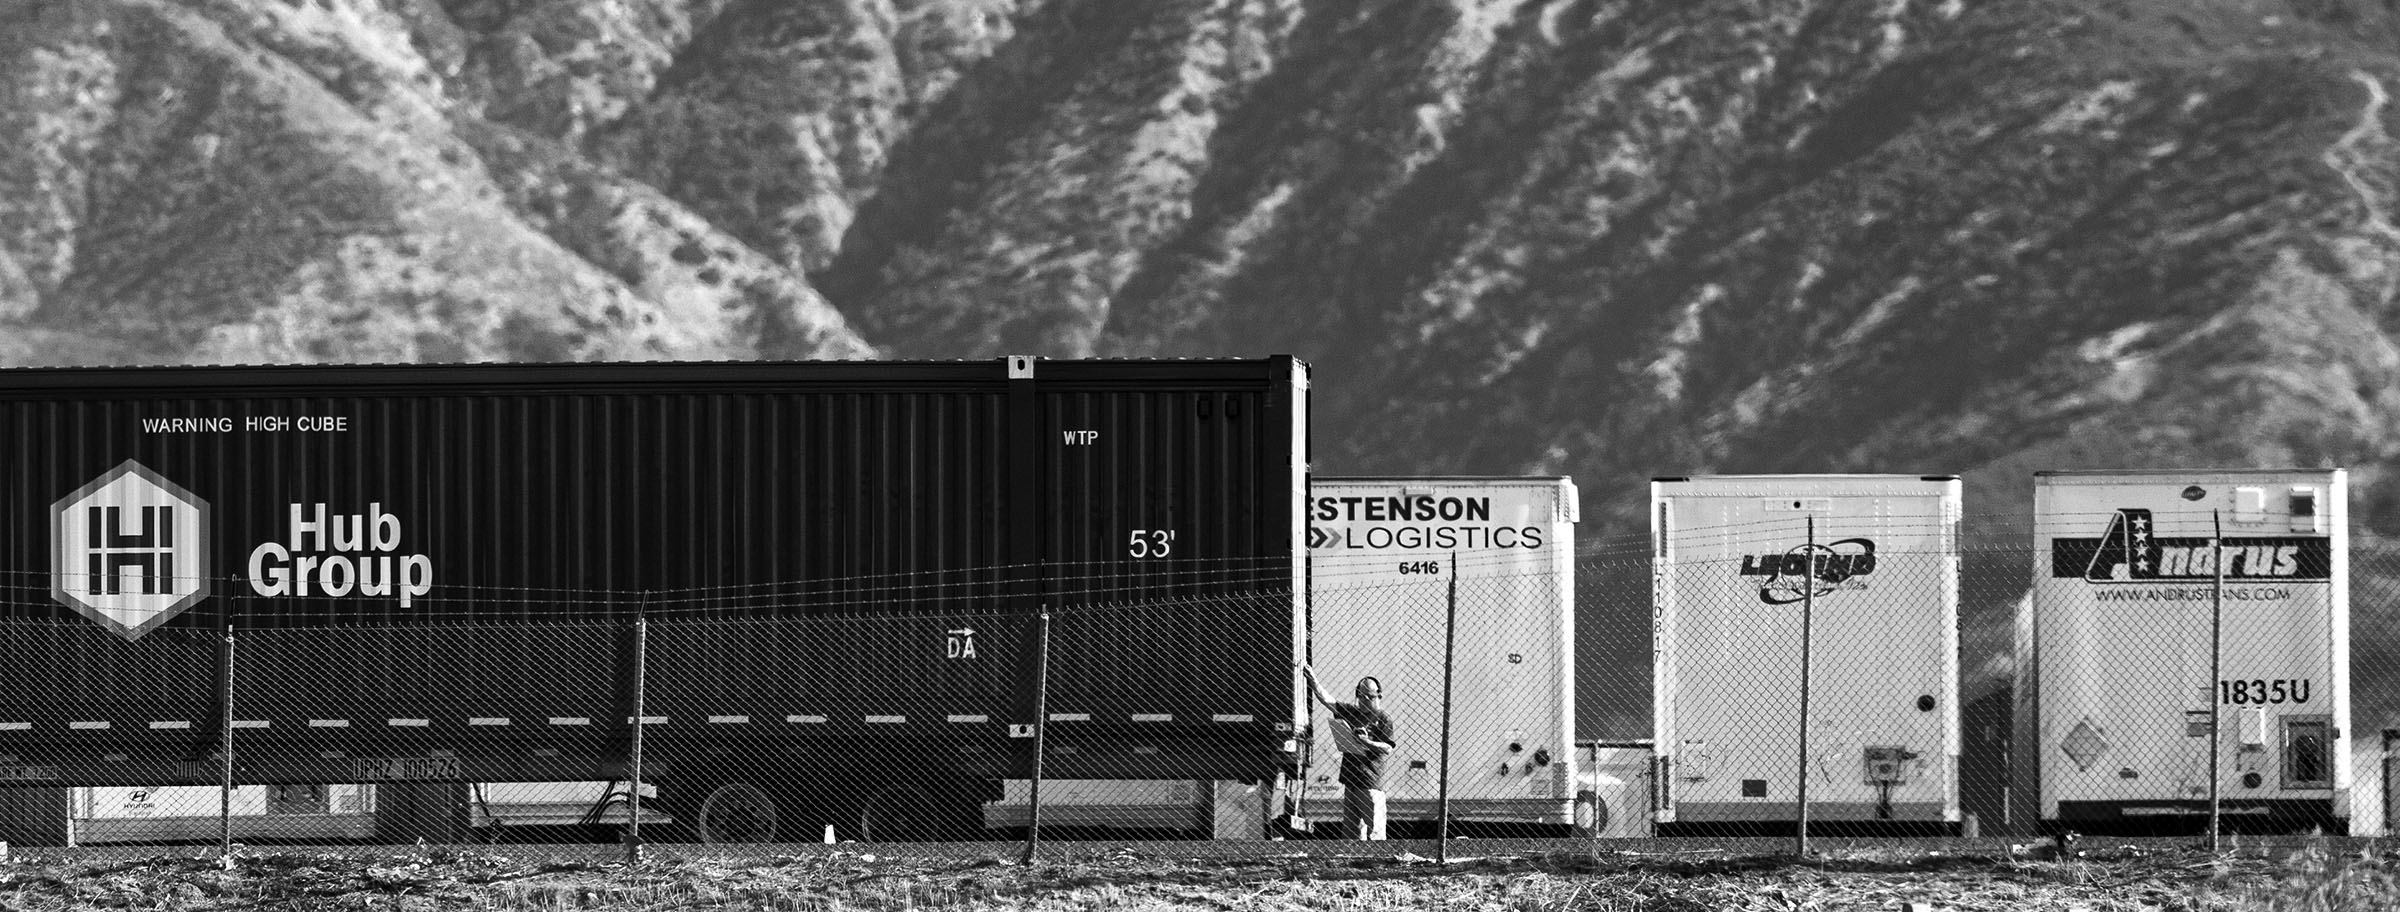 A lone trucker at work. San Bernardino has long been a transportation/distribution hub for the west coast of the United States. Trains, trucks, airplanes all converge there to distribute goods creating a heavy pollution burden on the area. In addition, much of the pollution from the LA/Orange County basin gets trapped there by converging mountain ranges as daily ocean winds push pollutants inland.